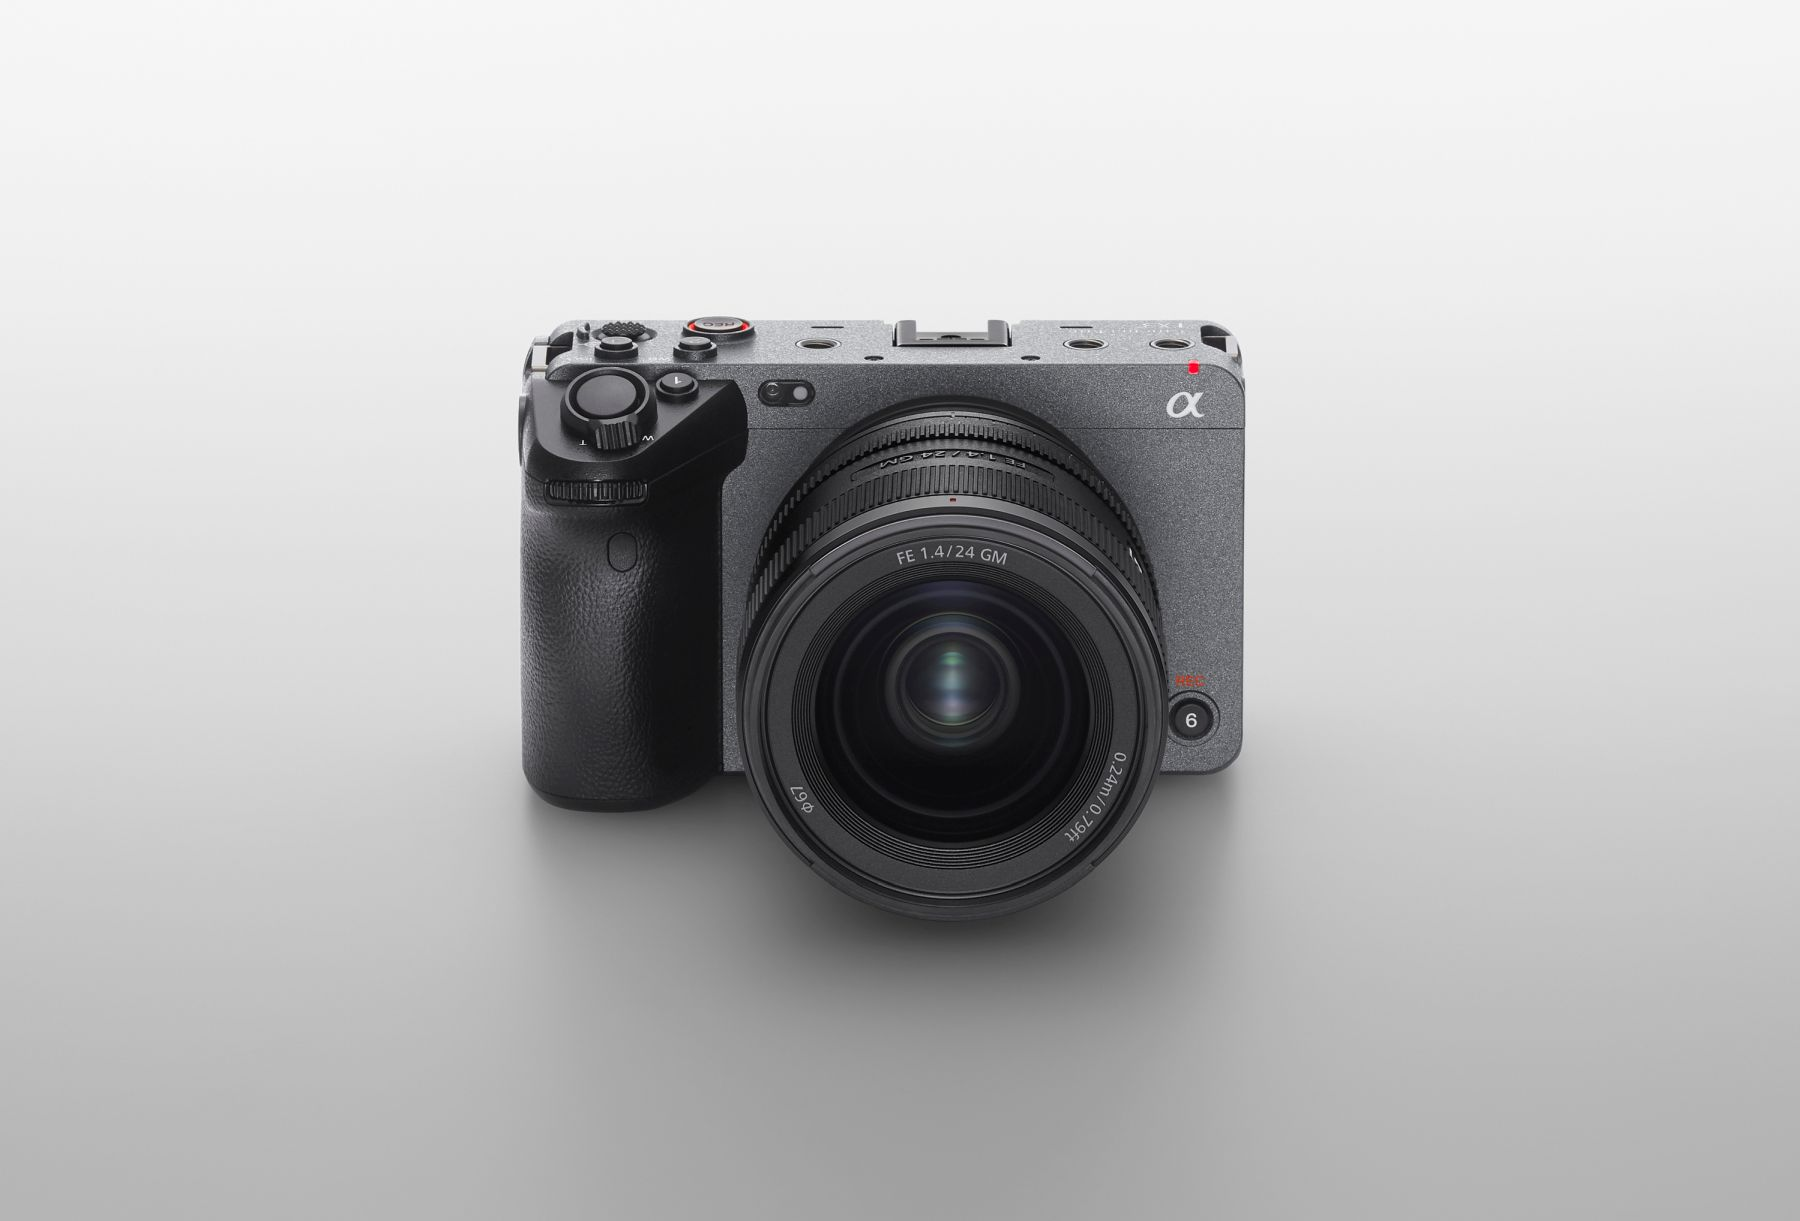 The brand's most compact and lightweight cinema line camera, the Sony FX3 promises to be a popular choice with travelers seeking cinematic freedom.